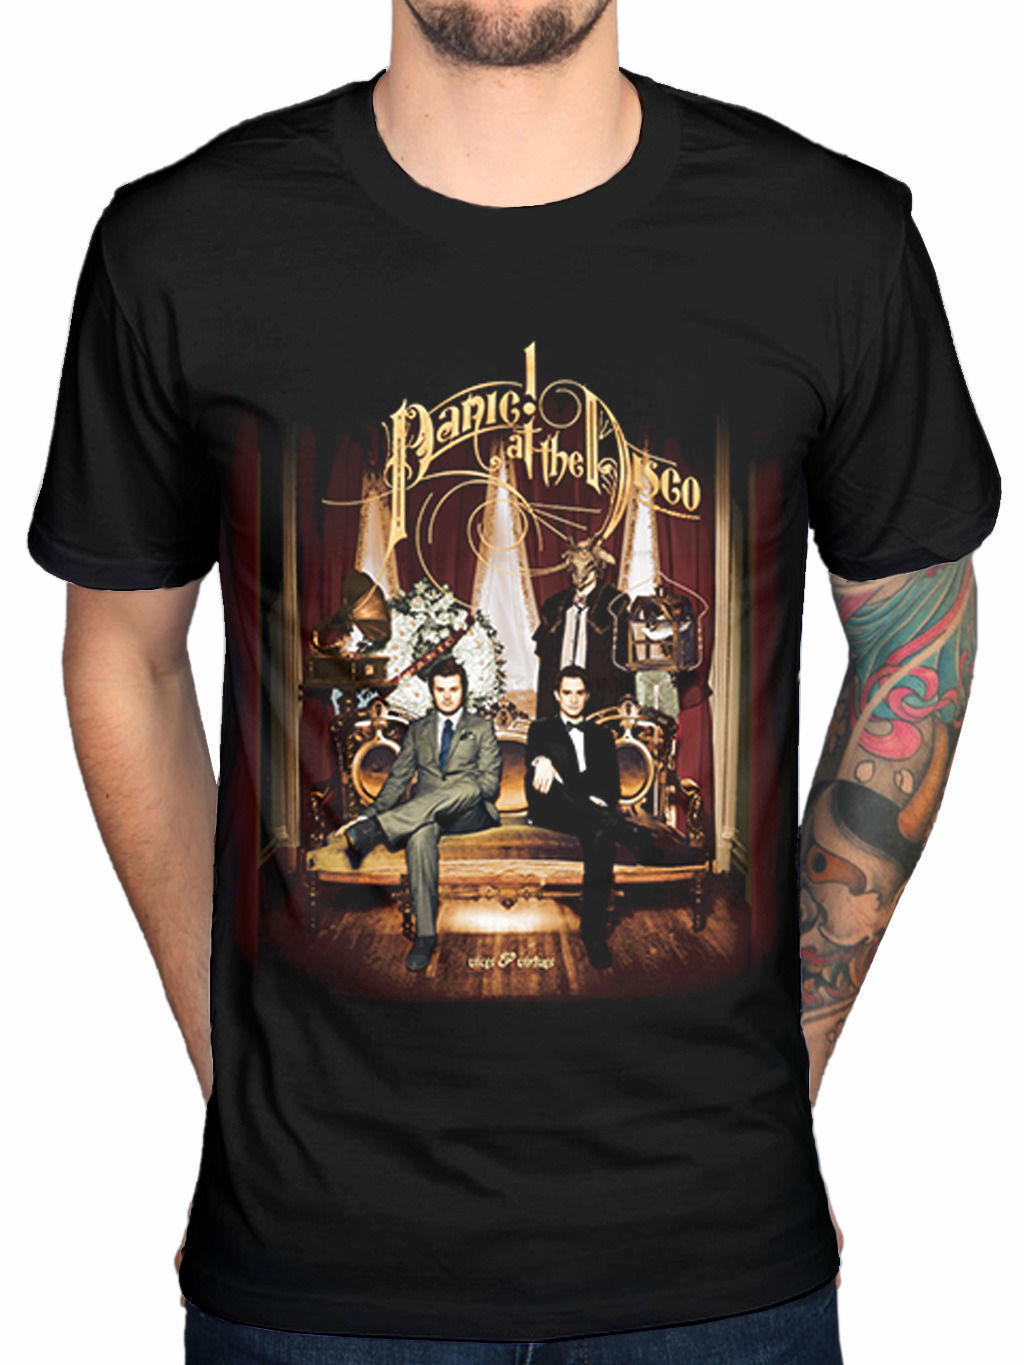 Panic At The Disco Vices & Virtues Mens Black Cotton Top T Shirt Tee